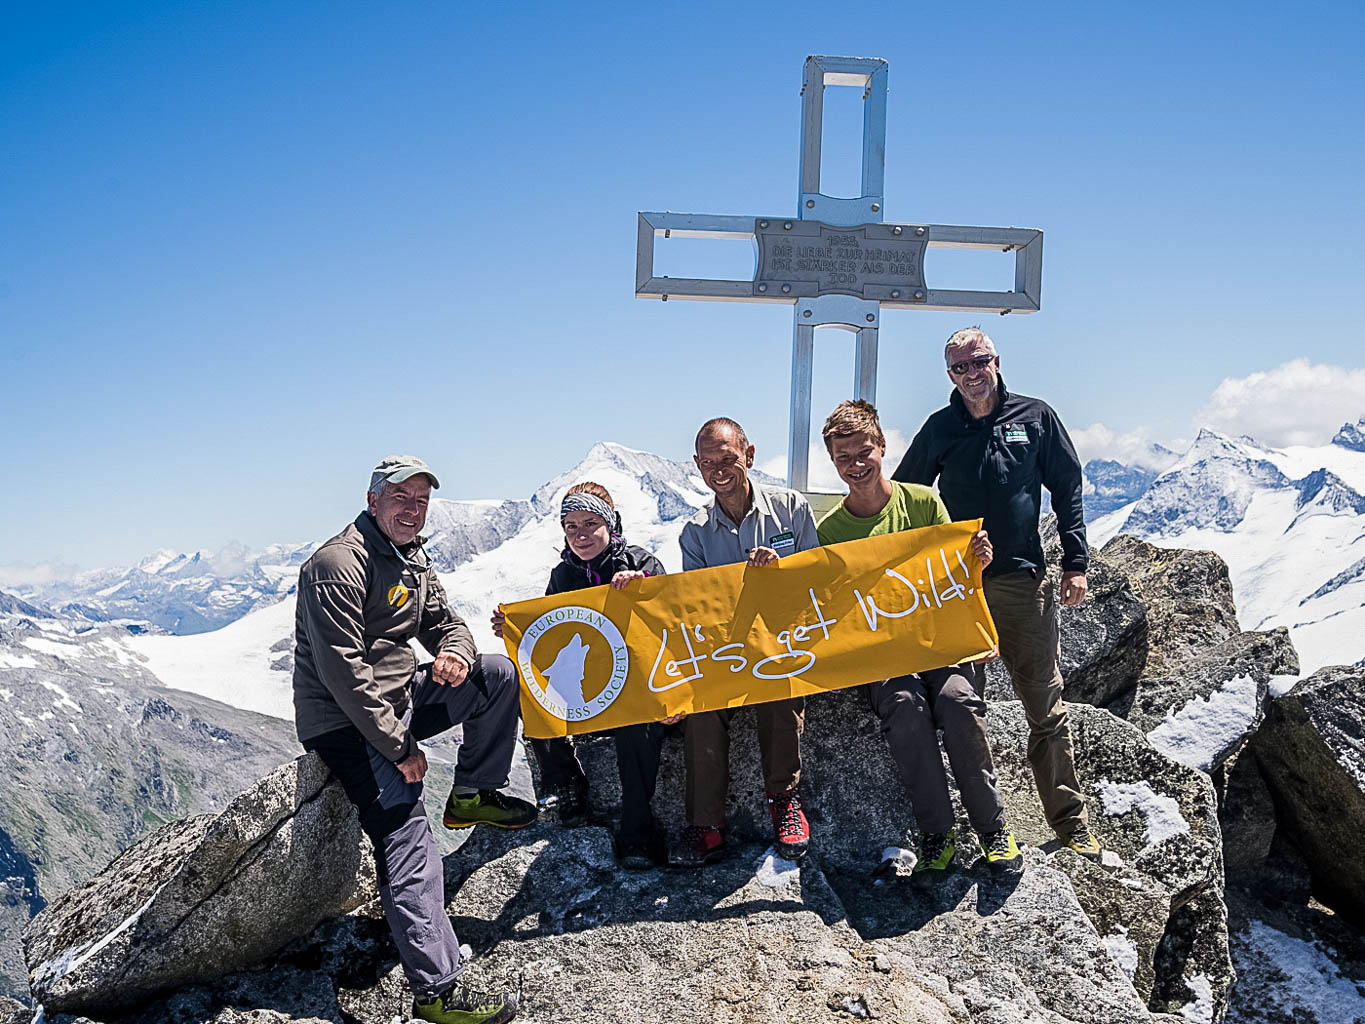 Hohe Tauern Wilderness Audit Mission 2015 12-2.jpg - © European Wilderness Society CC BY-NC-ND 4.0